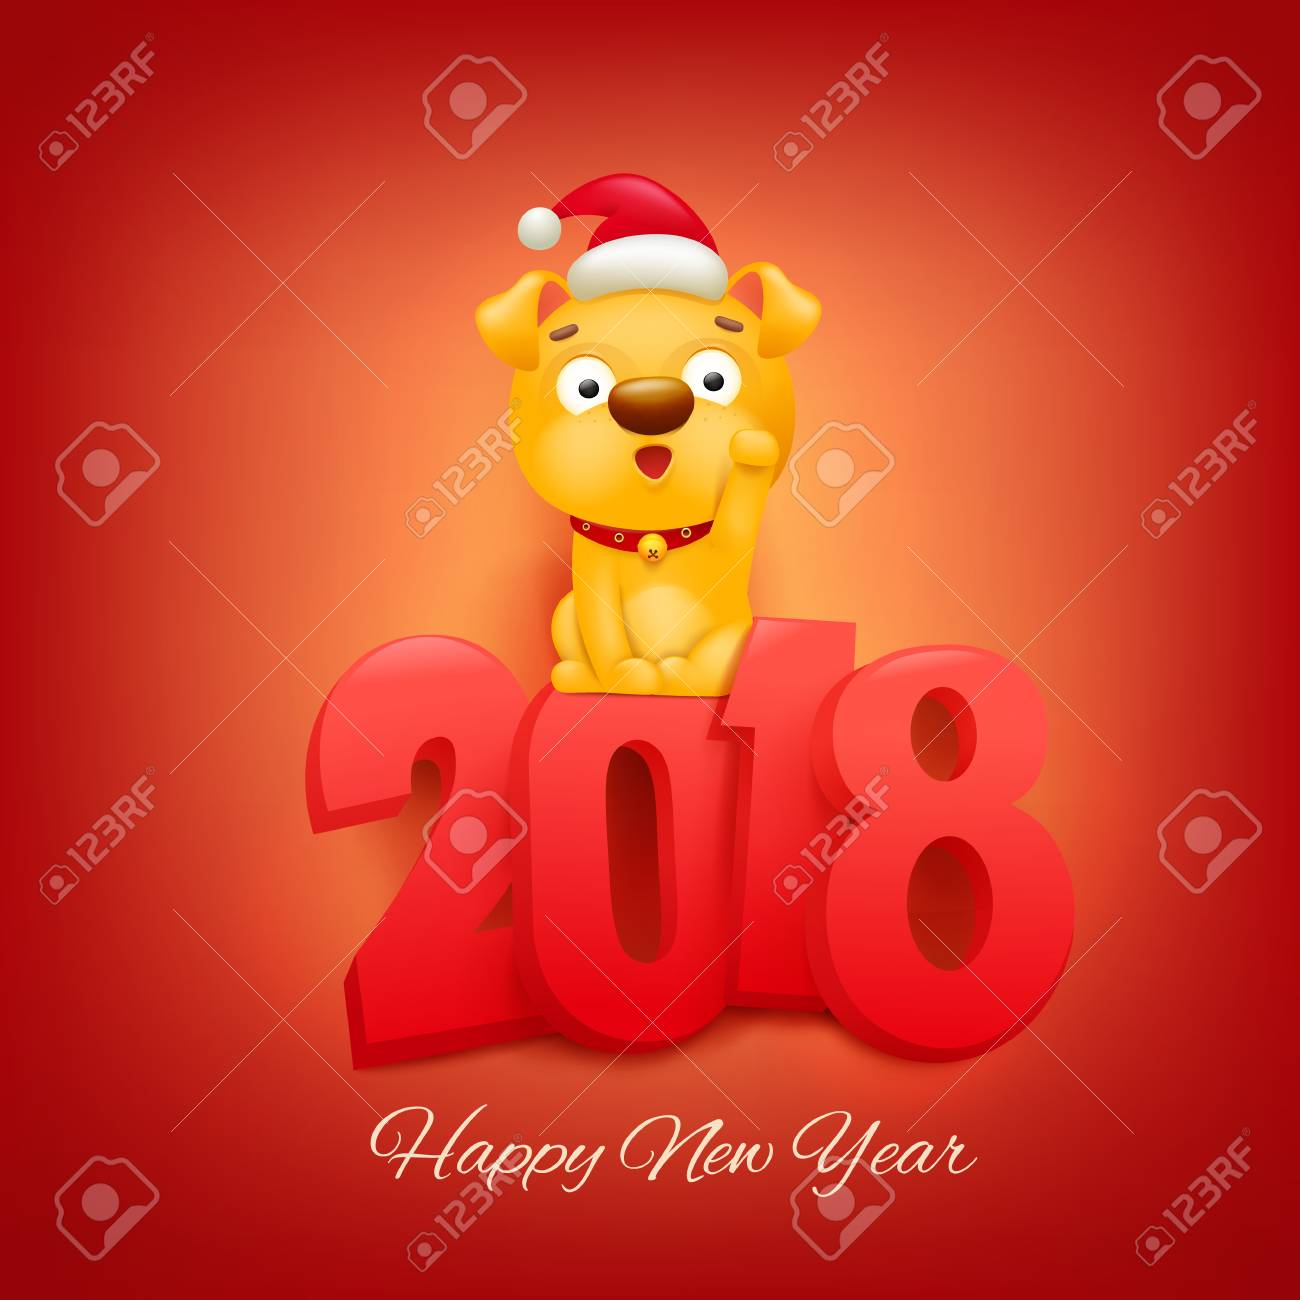 2018 new year invitation card with yellow dog cartoon character vector illustration stock vector 91174911